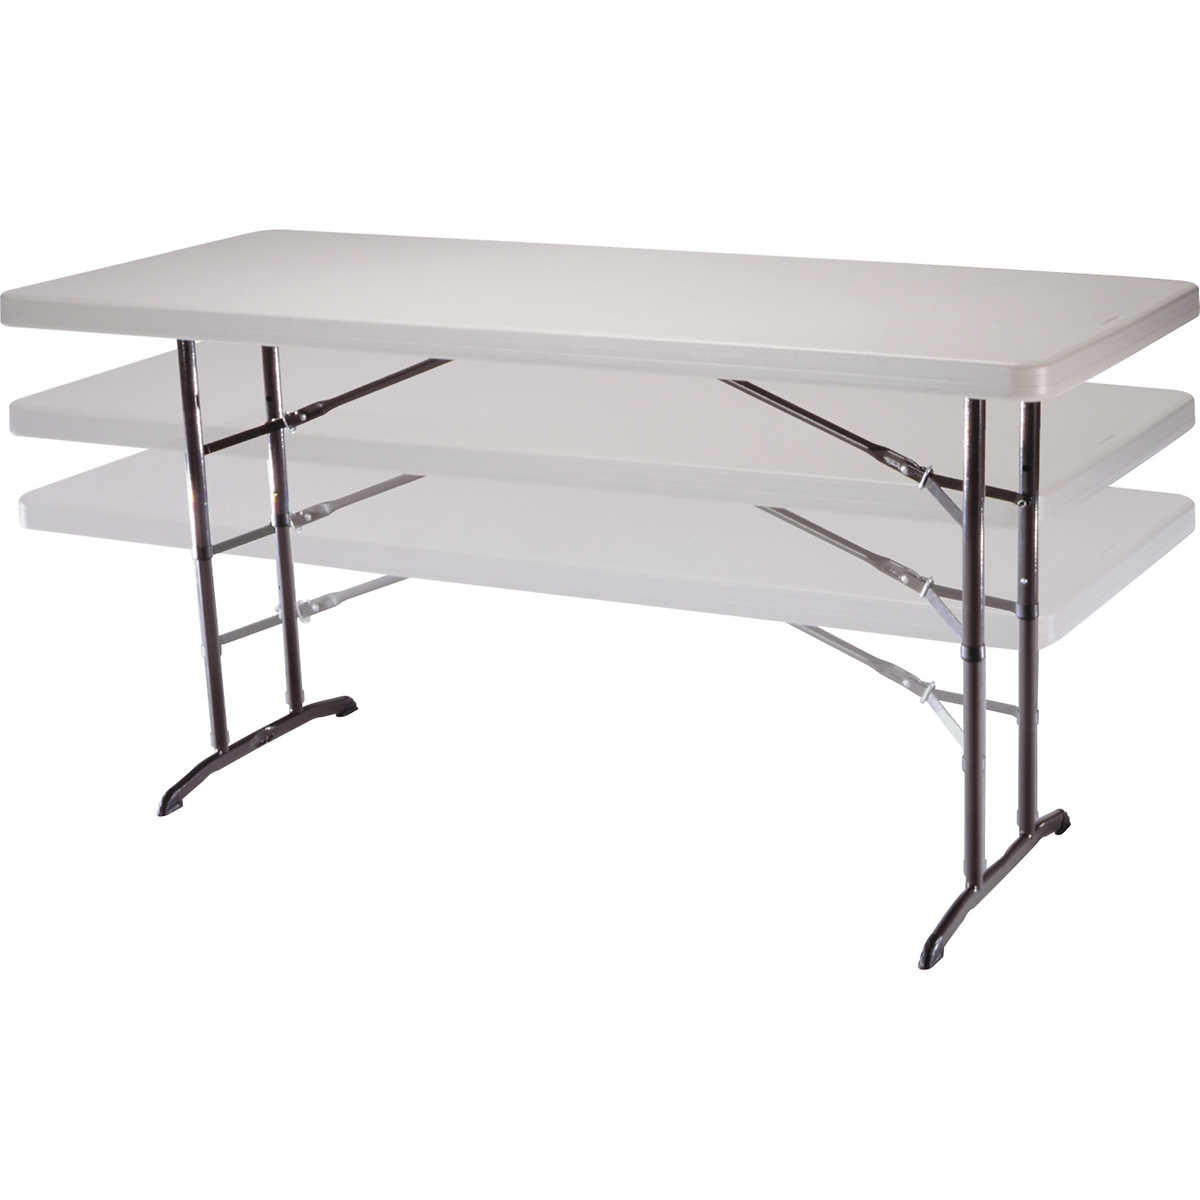 4 Foot Folding Table Costco.Lifetime 6 Adjustable Utility Table